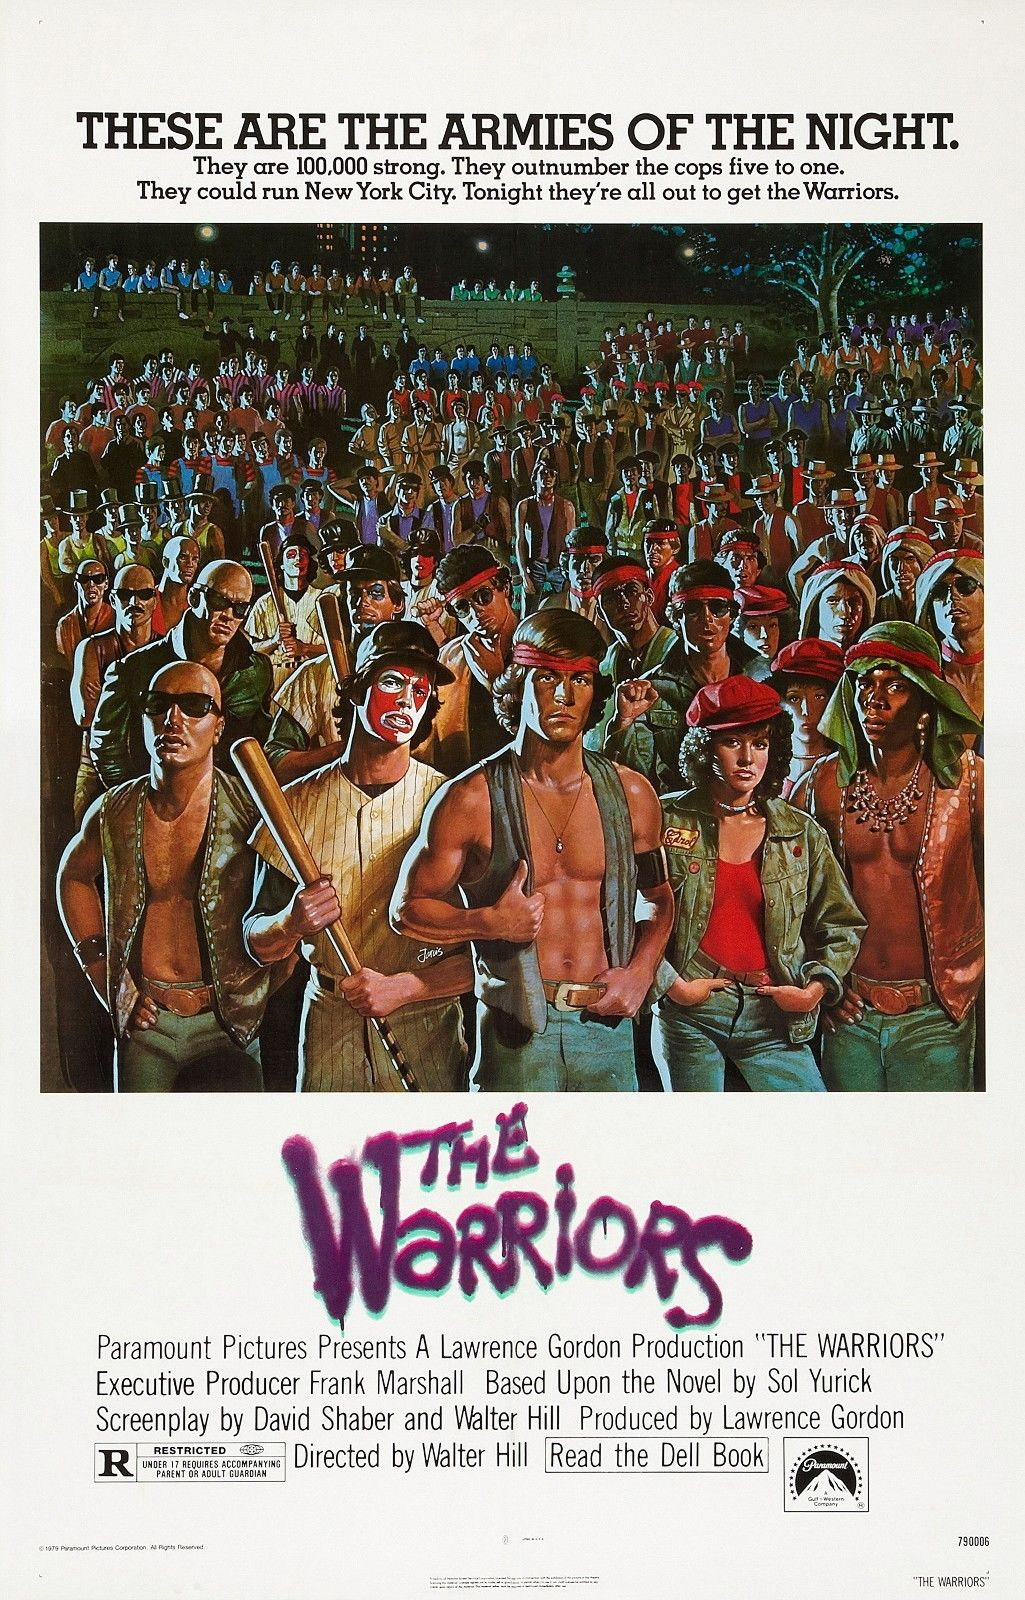 72180-THE-WARRIORS-Movie-1979-Cult-Film-NYC-Wall-Print-Poster-Affiche